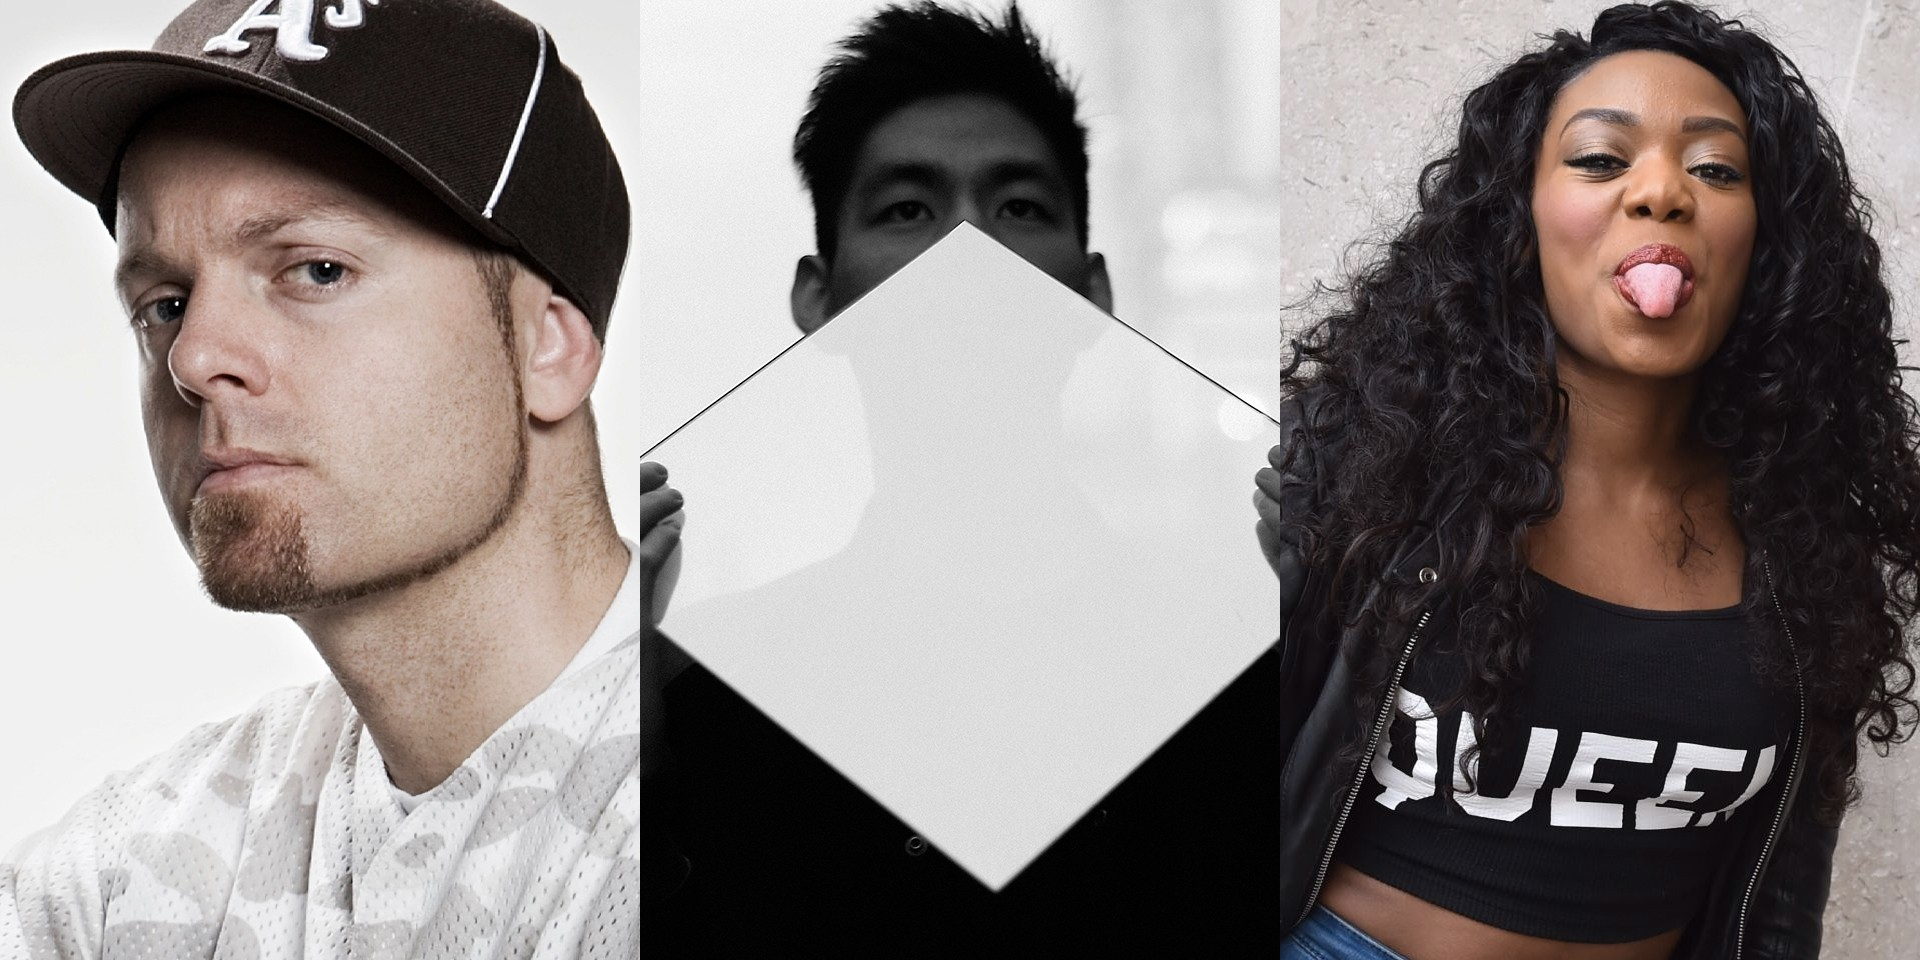 Sónar Hong Kong announce their line-up — DJ Shadow, Nosaj Thing, Lady Leshurr and more to perform